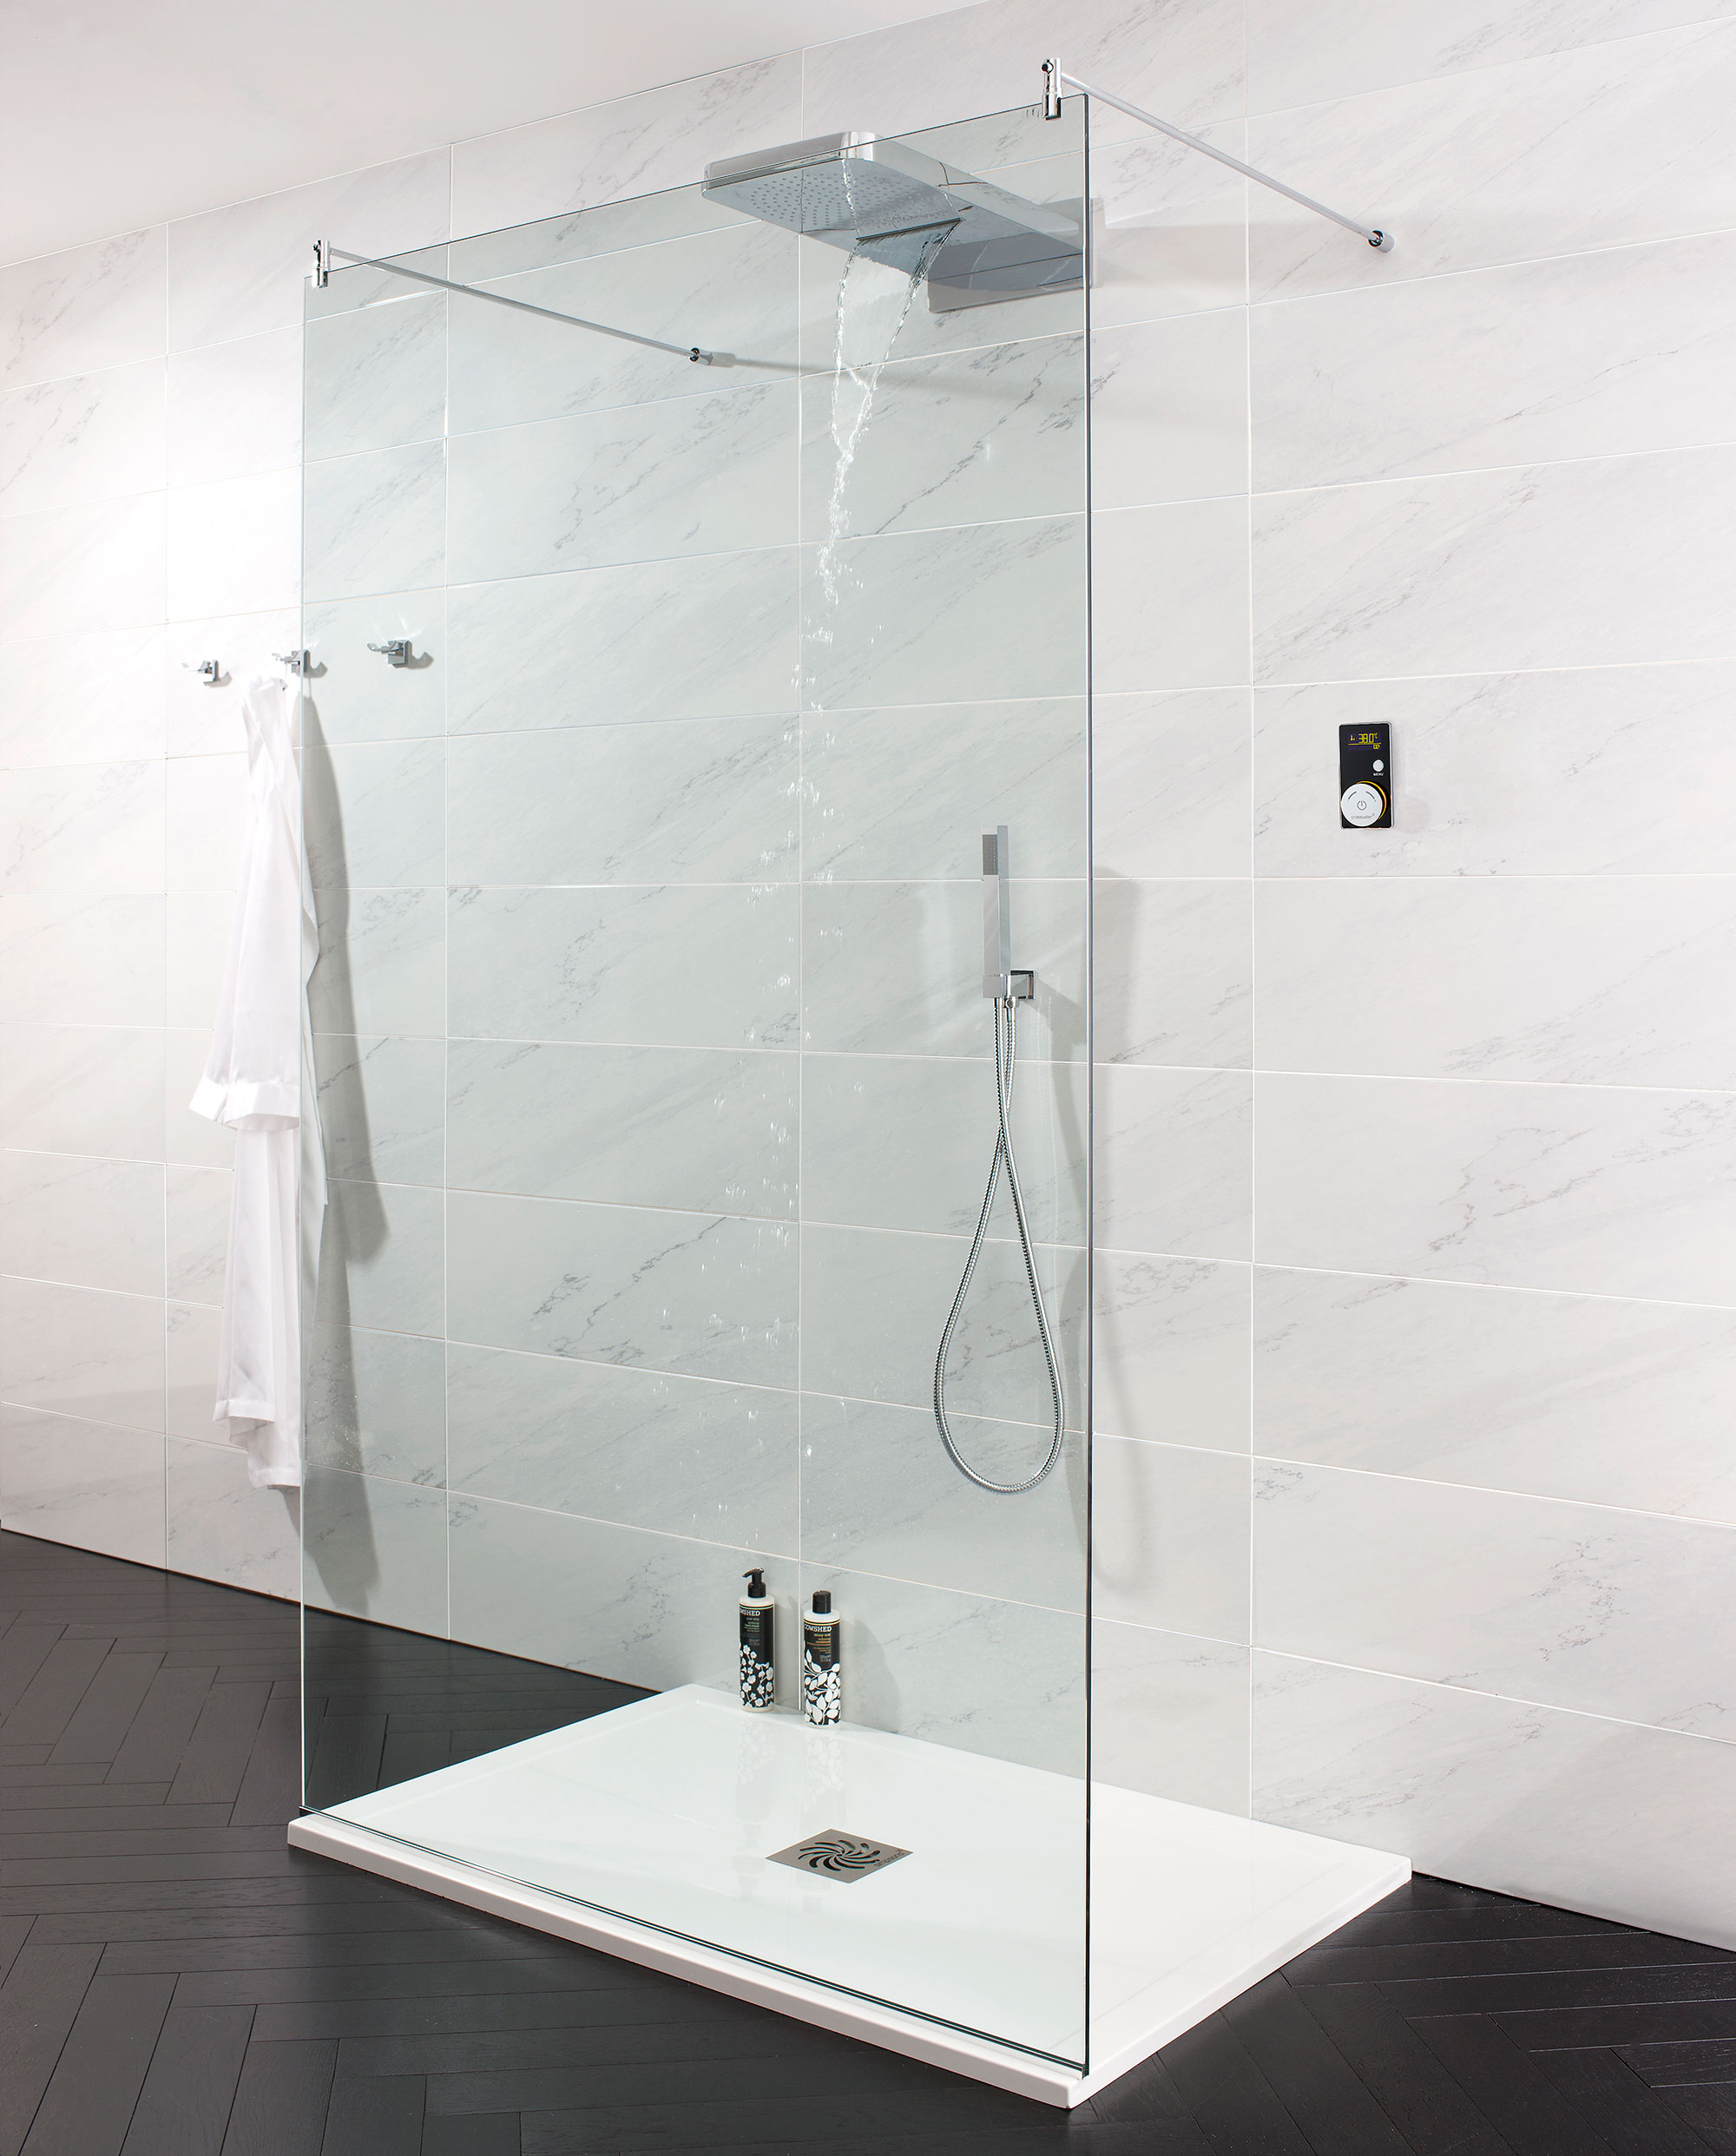 3way_SHOWER_Total water control small